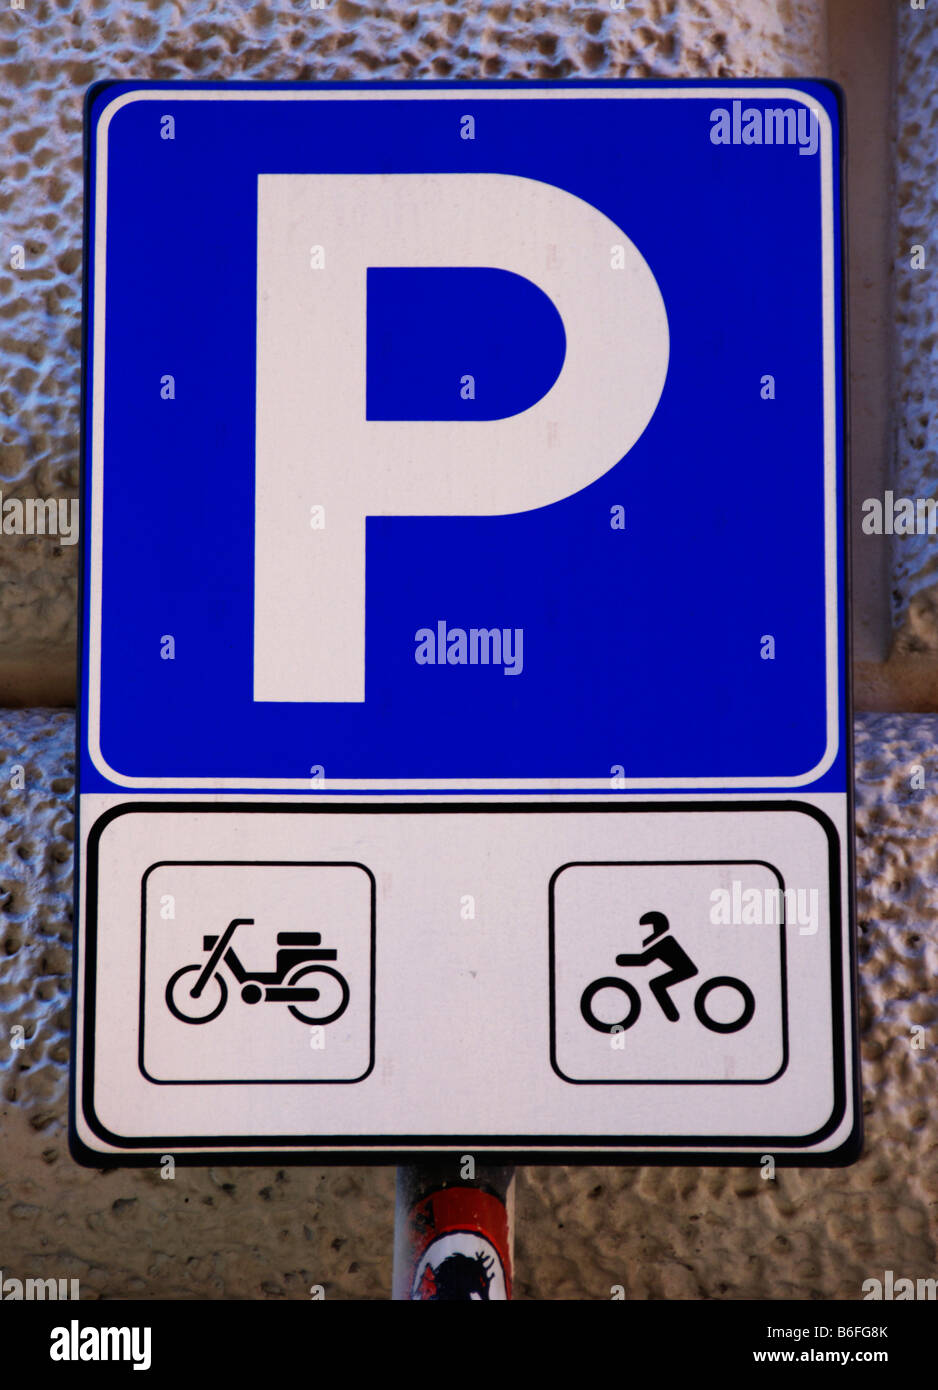 Road sign, parking for motorcycles and moped or scooters, Rome, Italy, Europe - Stock Image